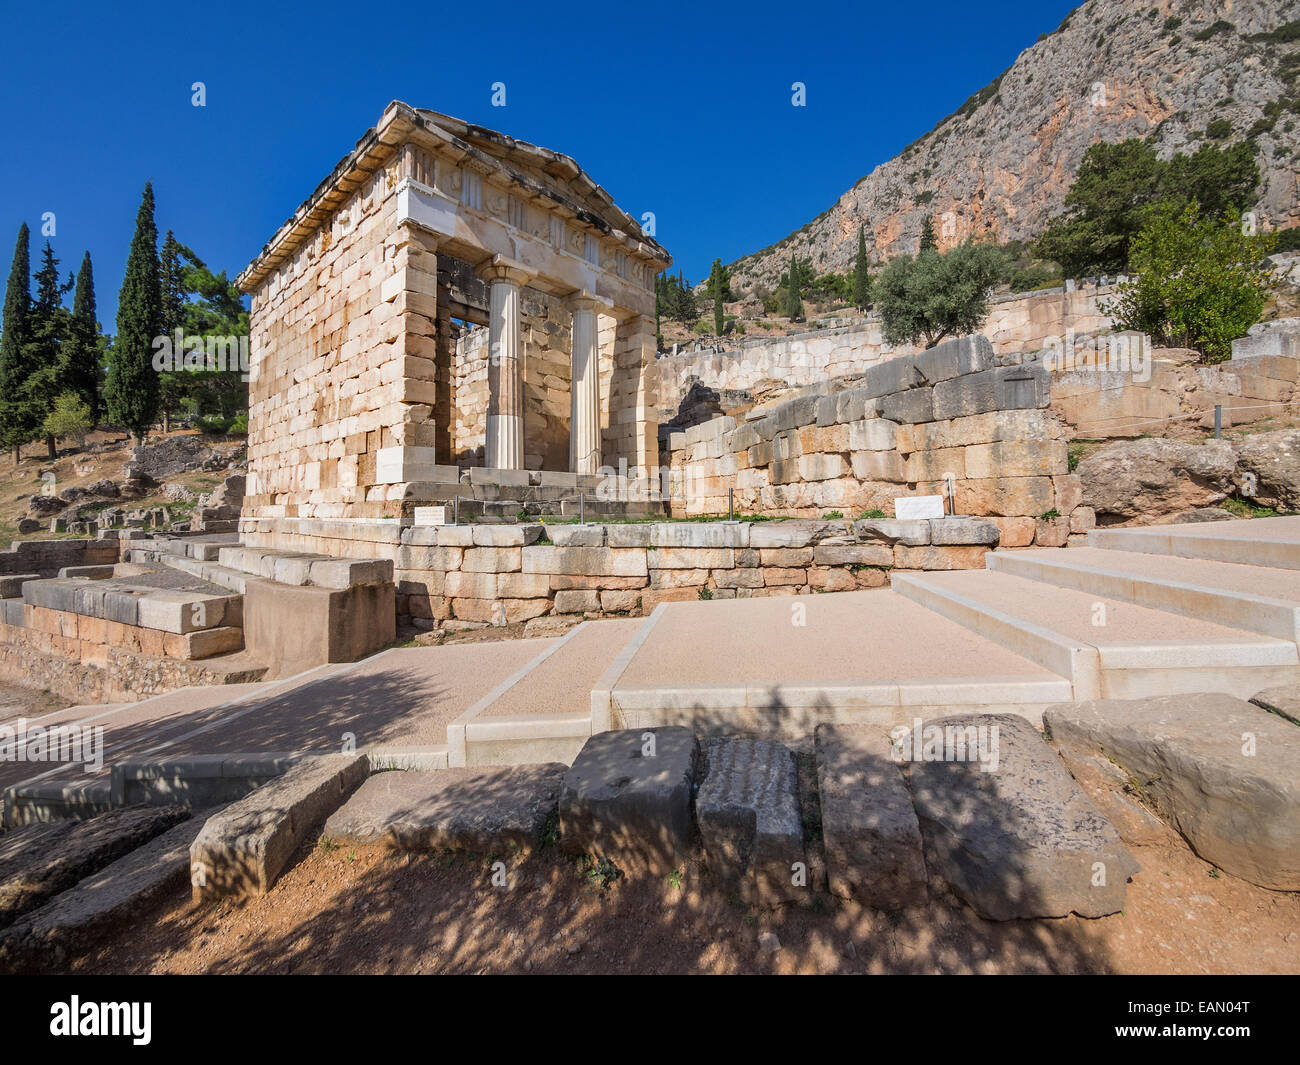 The reconstructed Treasury of Delphi, built to commemorate their victory at the Battle of Marathon. Greece Stock Photo